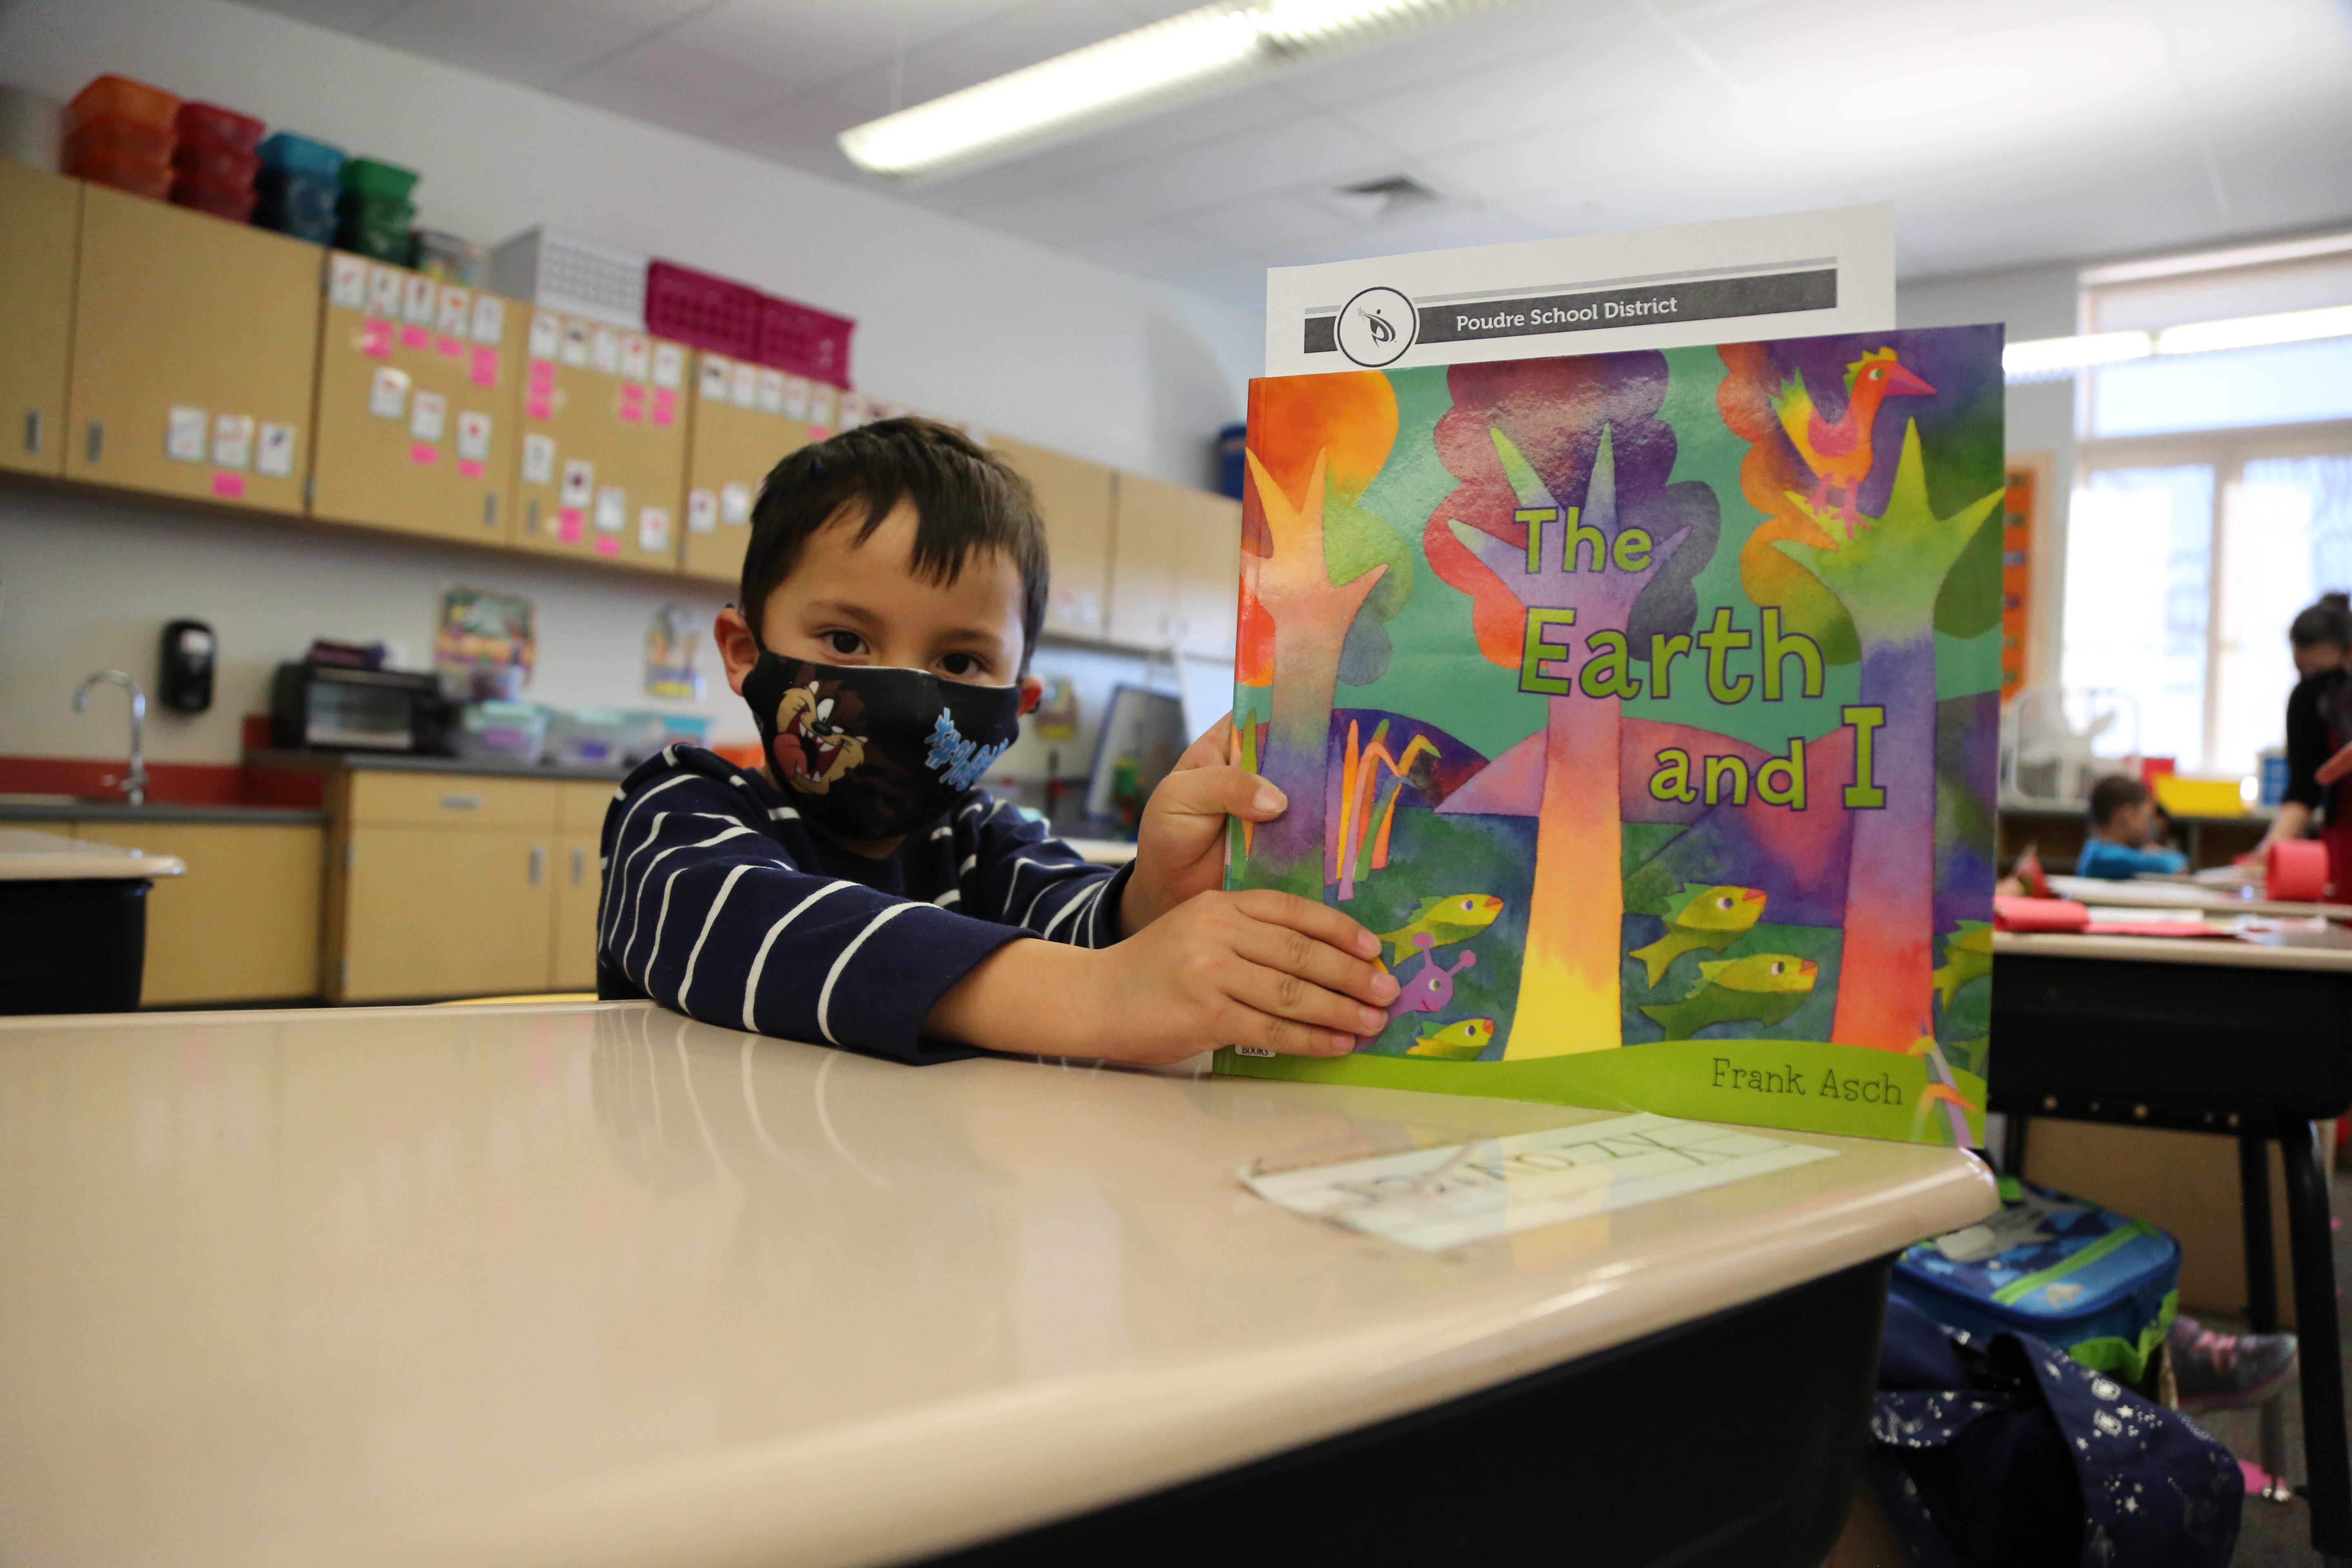 A Rice Elementary student props up his book.